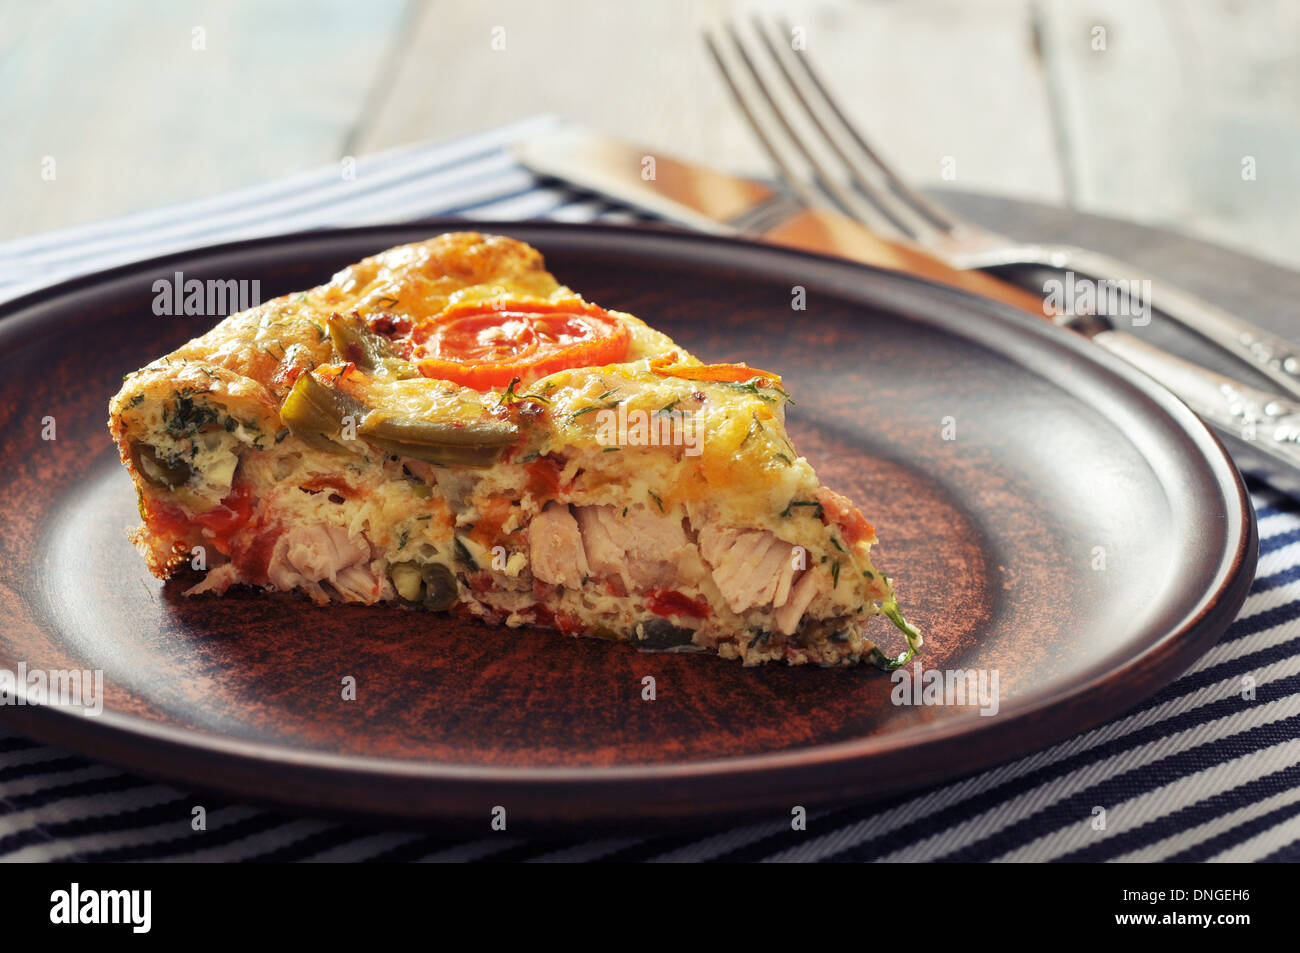 Frittata with Fresh Vegetables and chicken meat on plate - Stock Image